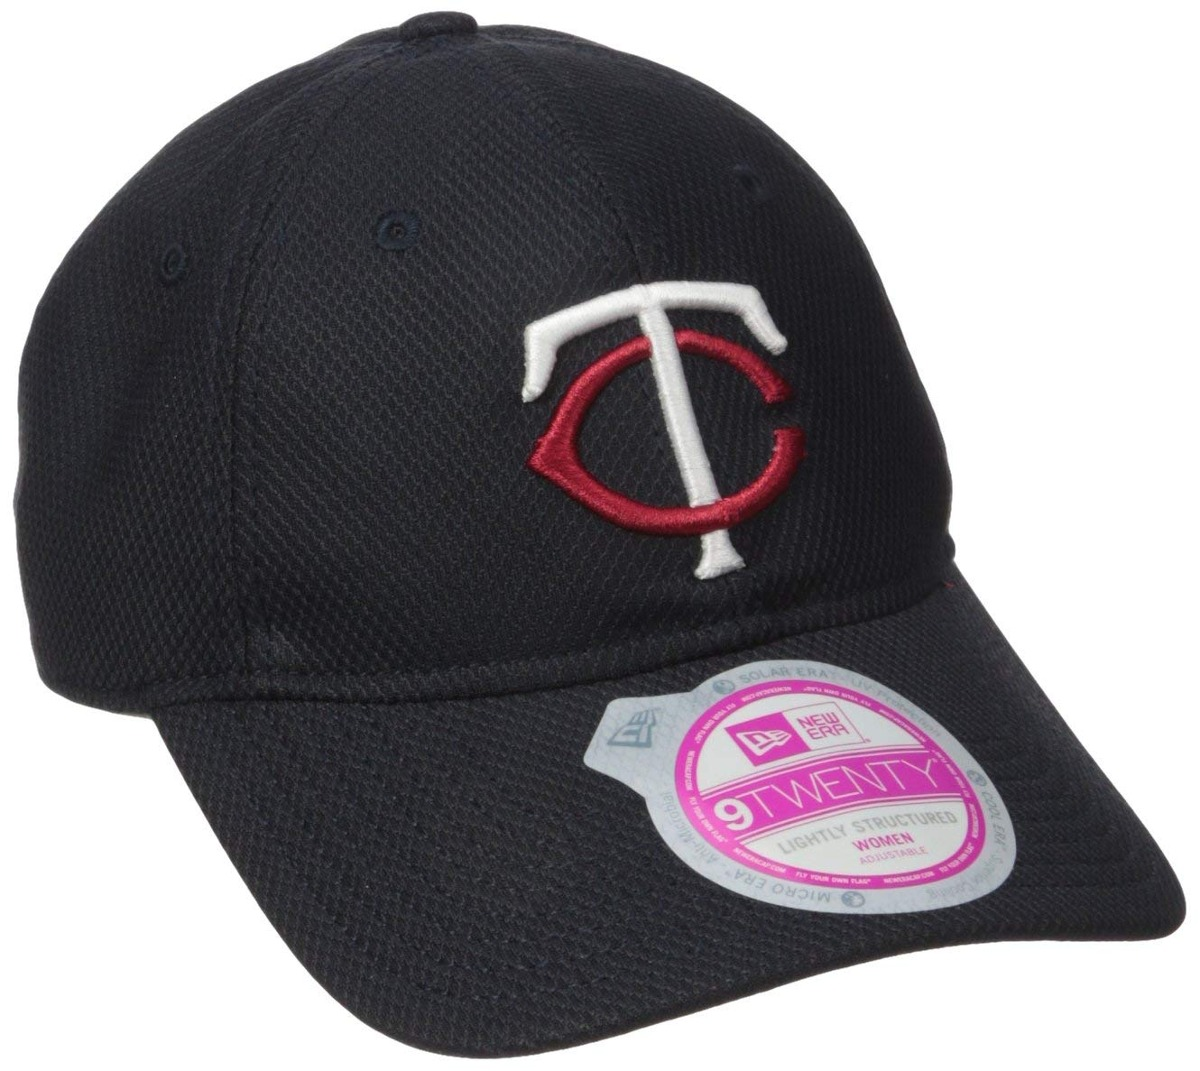 gorra ajustable new era mlb para mujer tech essential de ... Cargando zoom. 45fd68dd01c